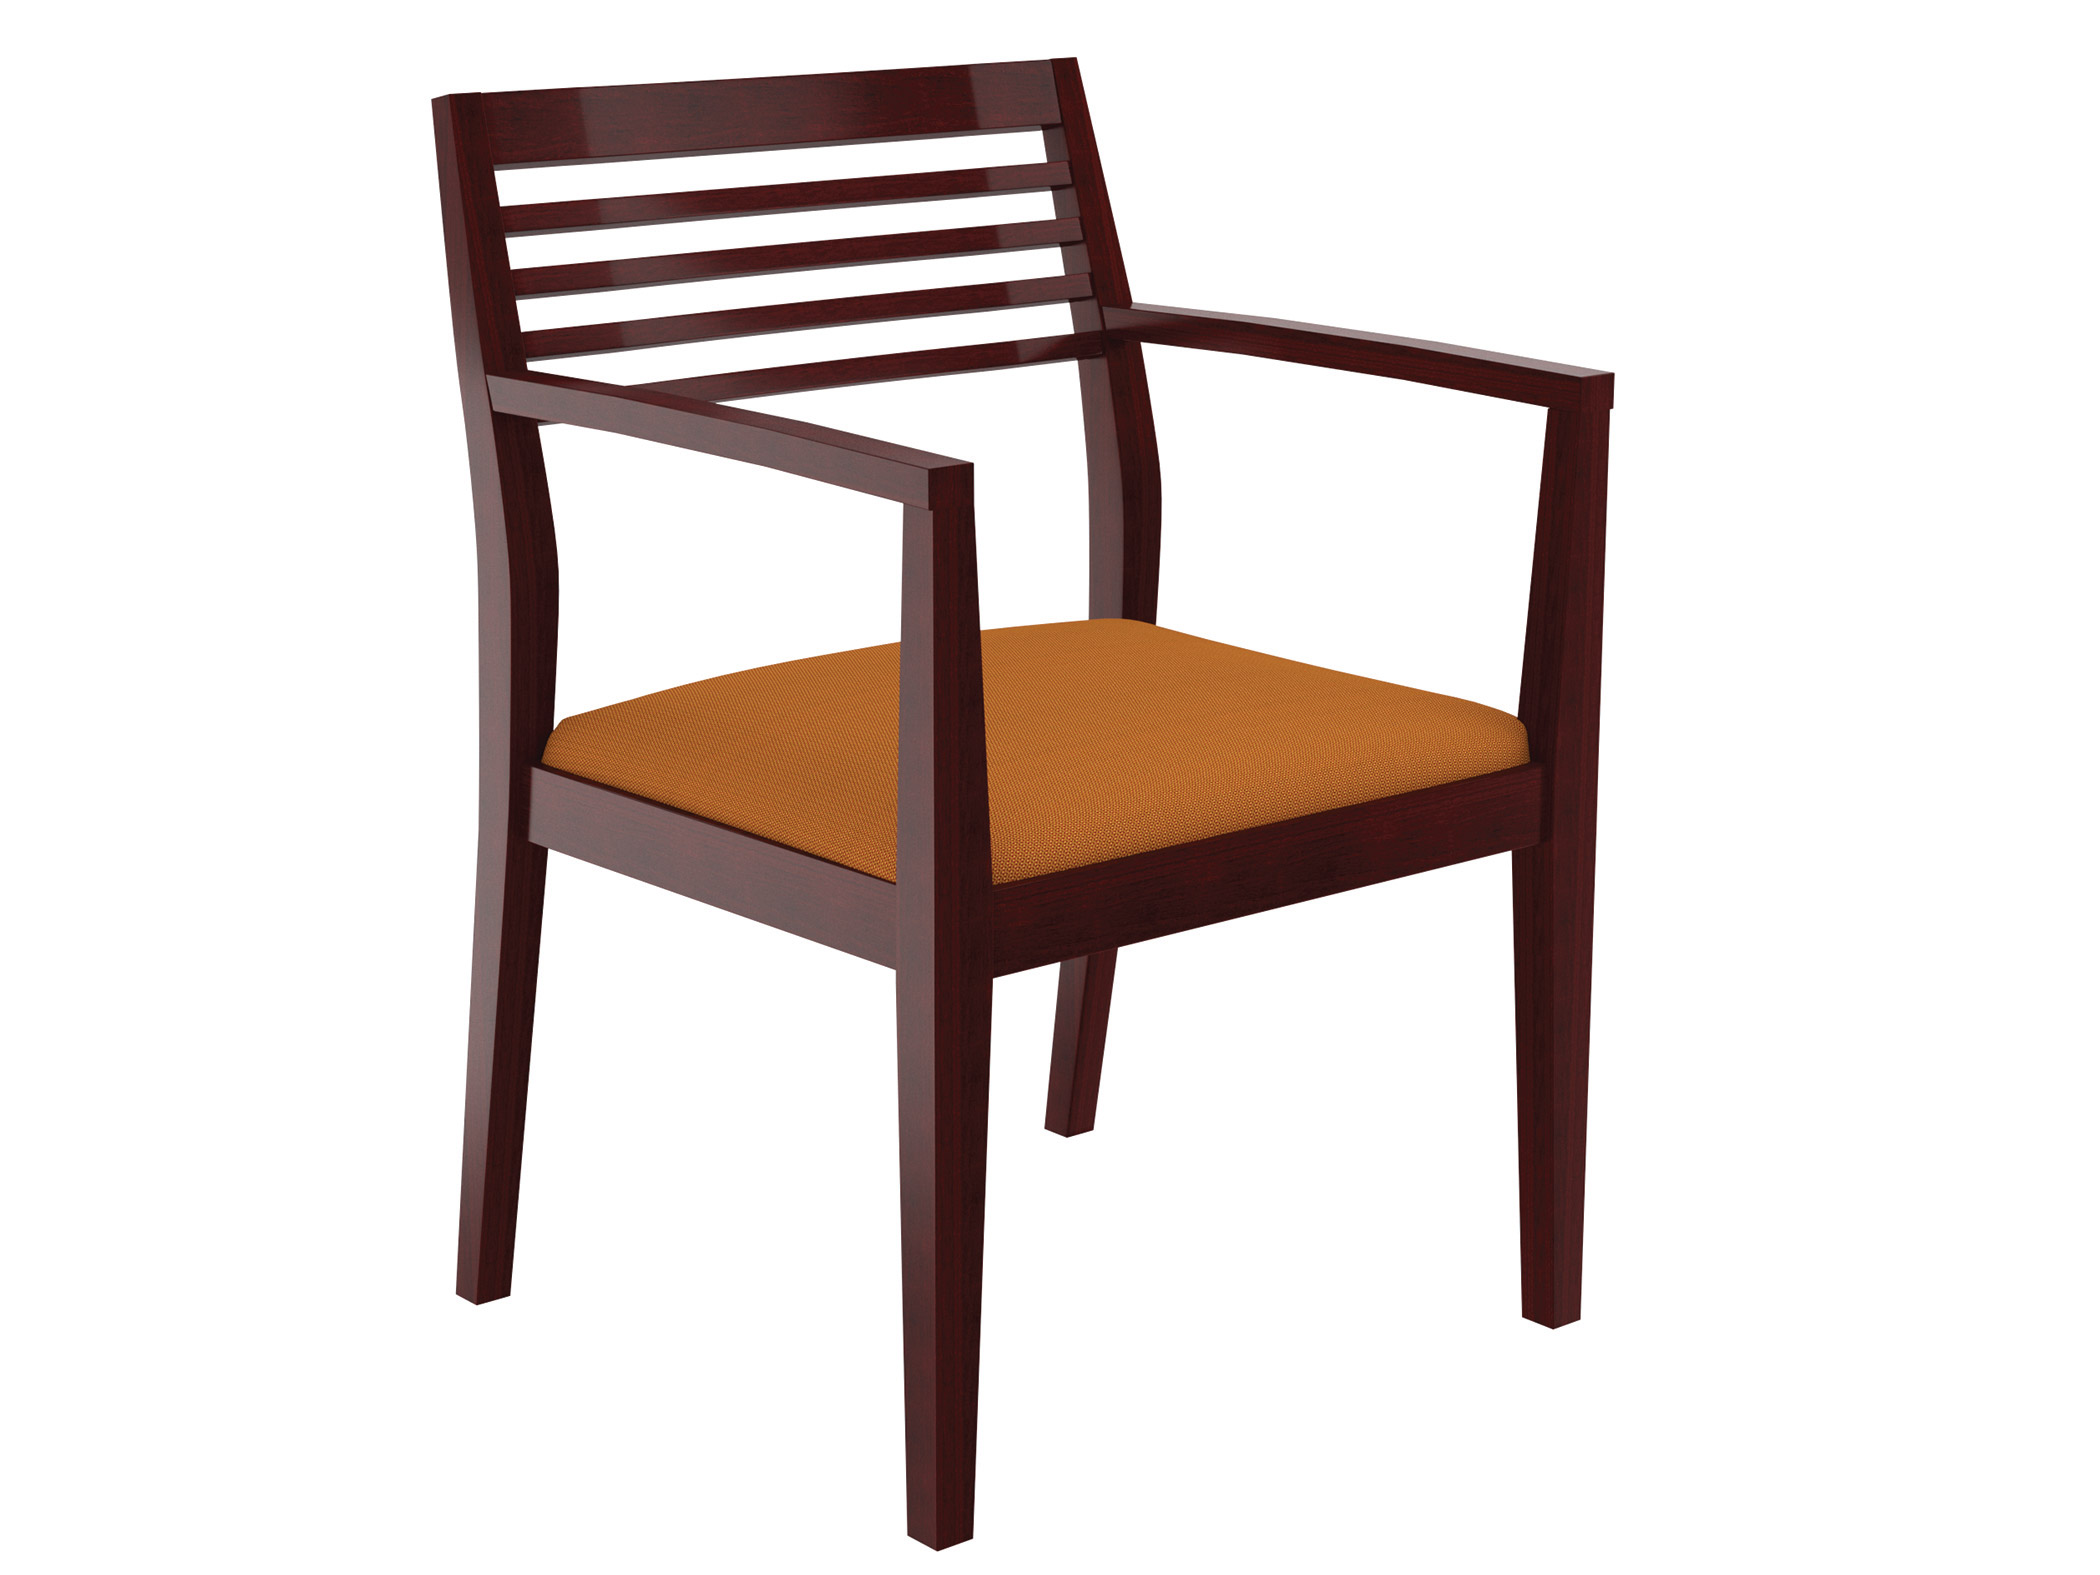 wood office chairs - office visitor chairs - chairs for office